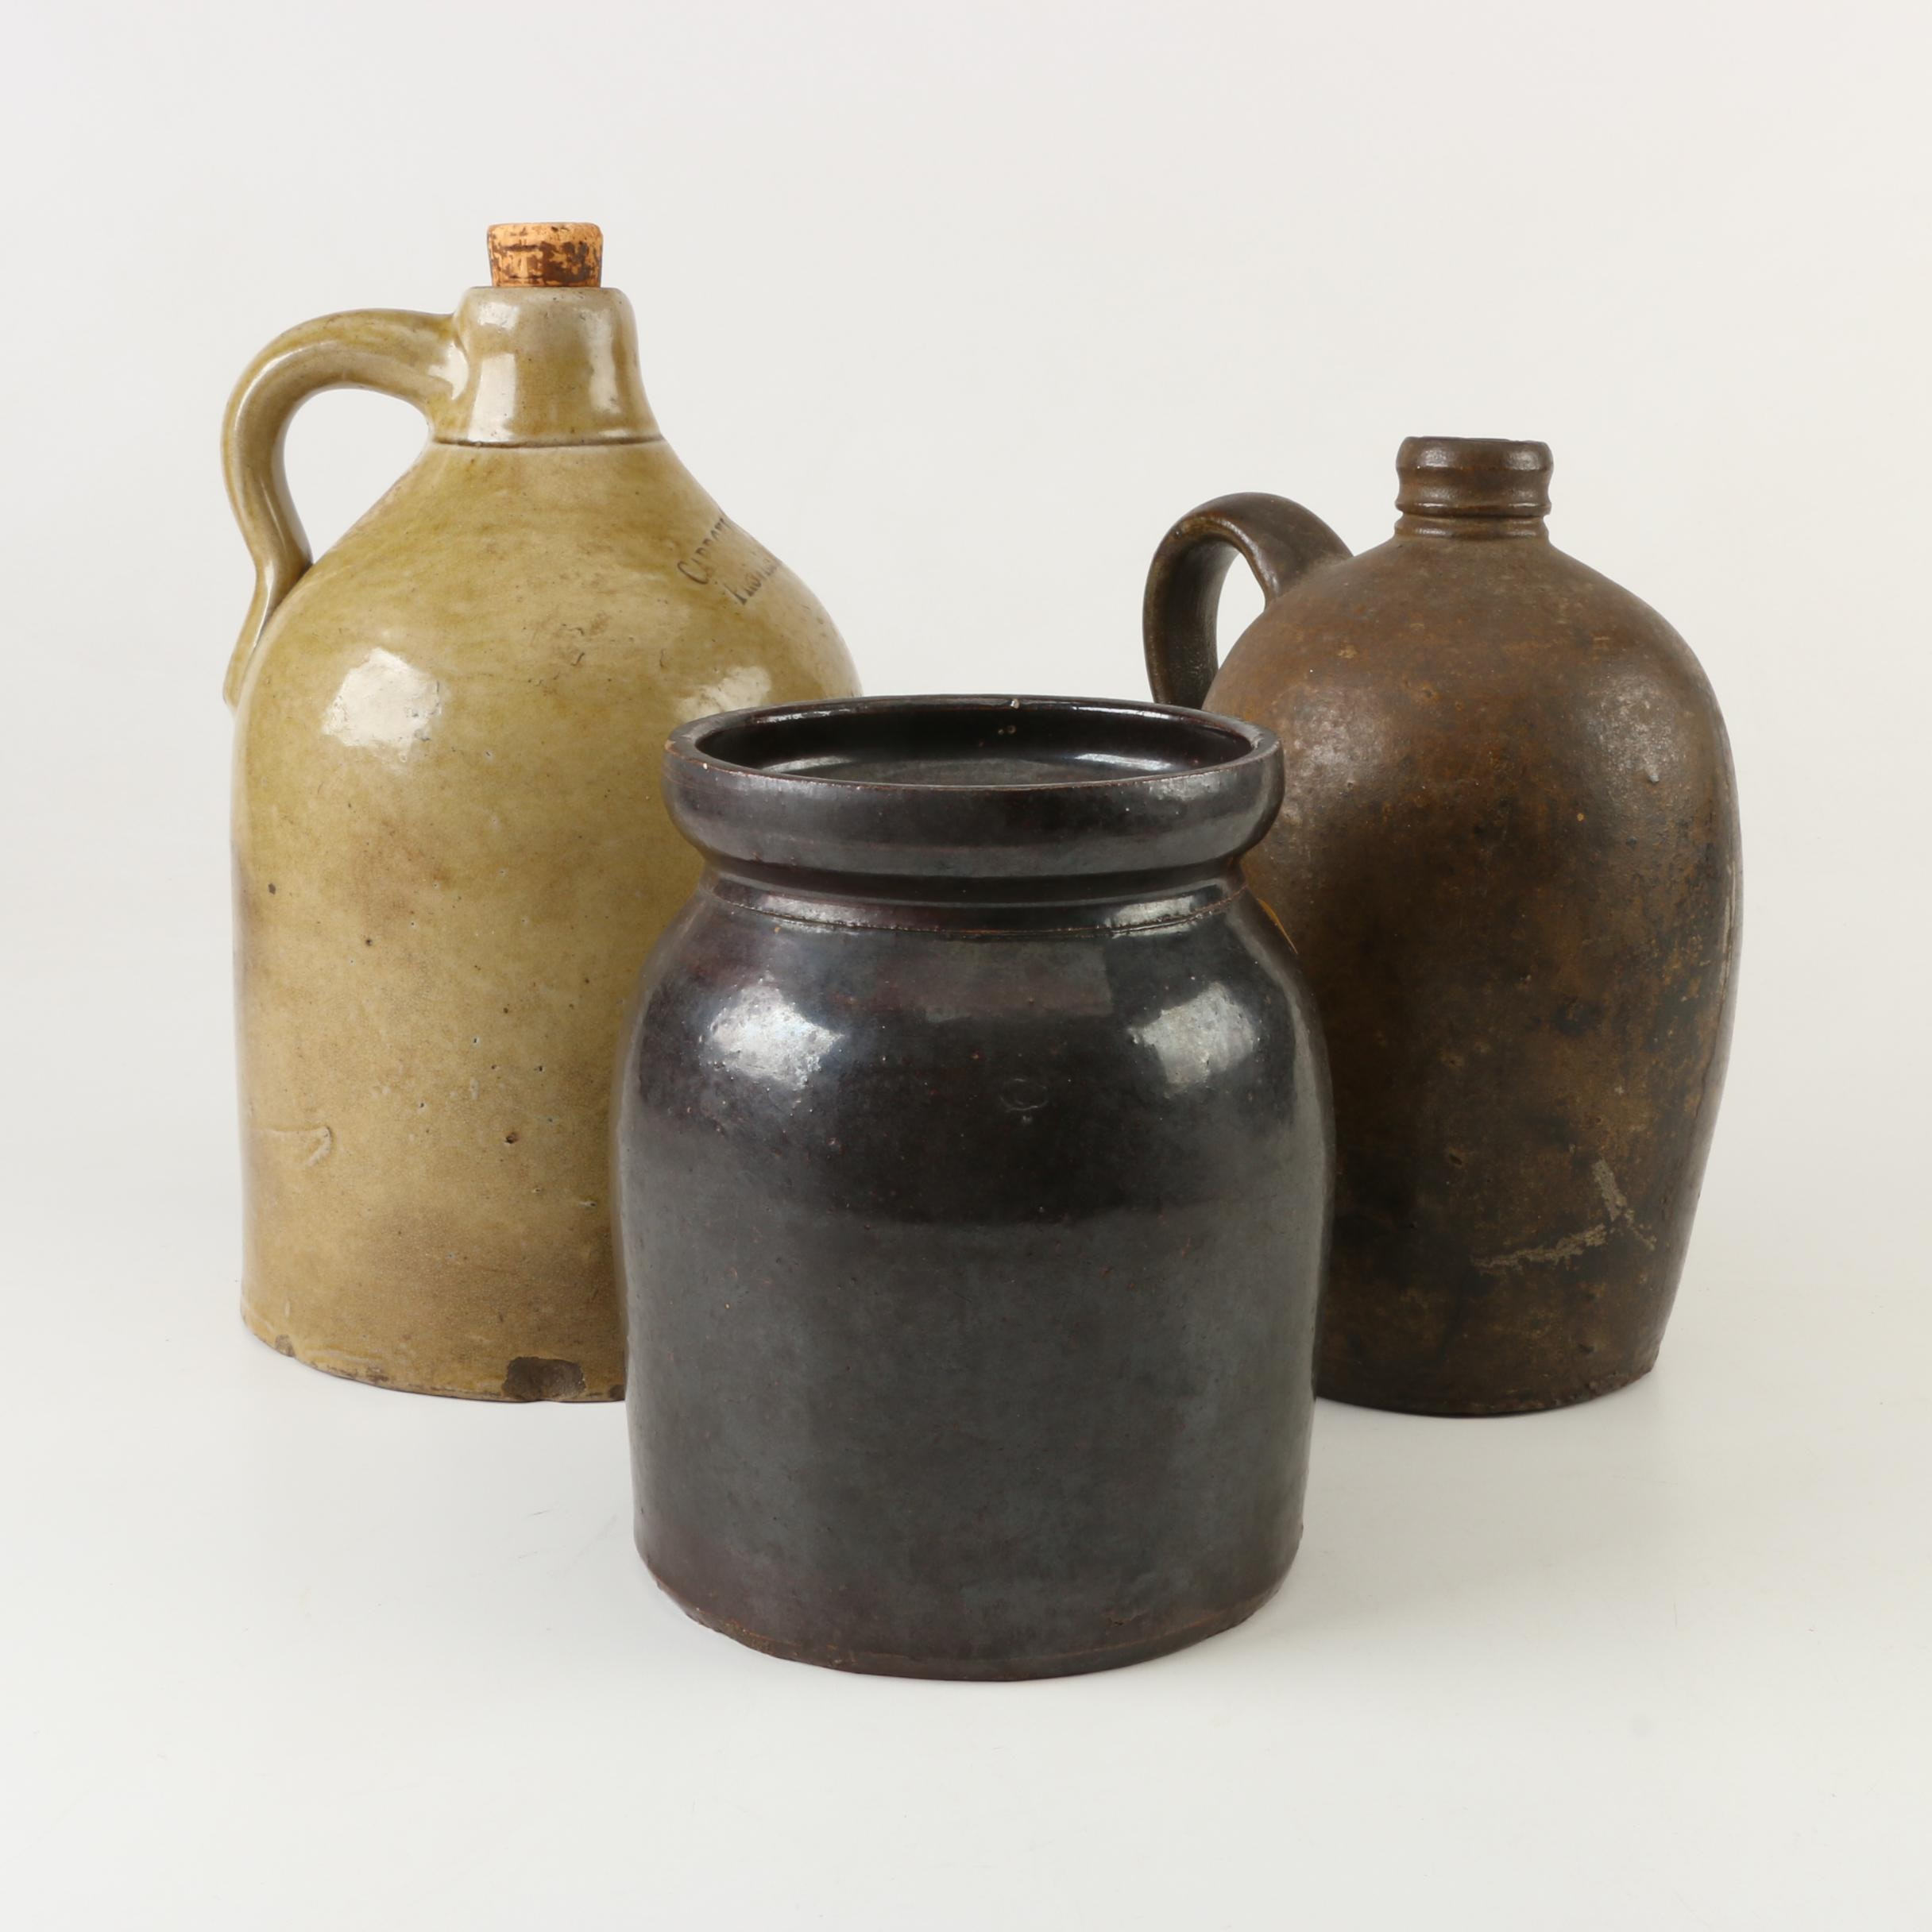 Antique and Vintage Stoneware Jugs and Crock including Caproni Bros.